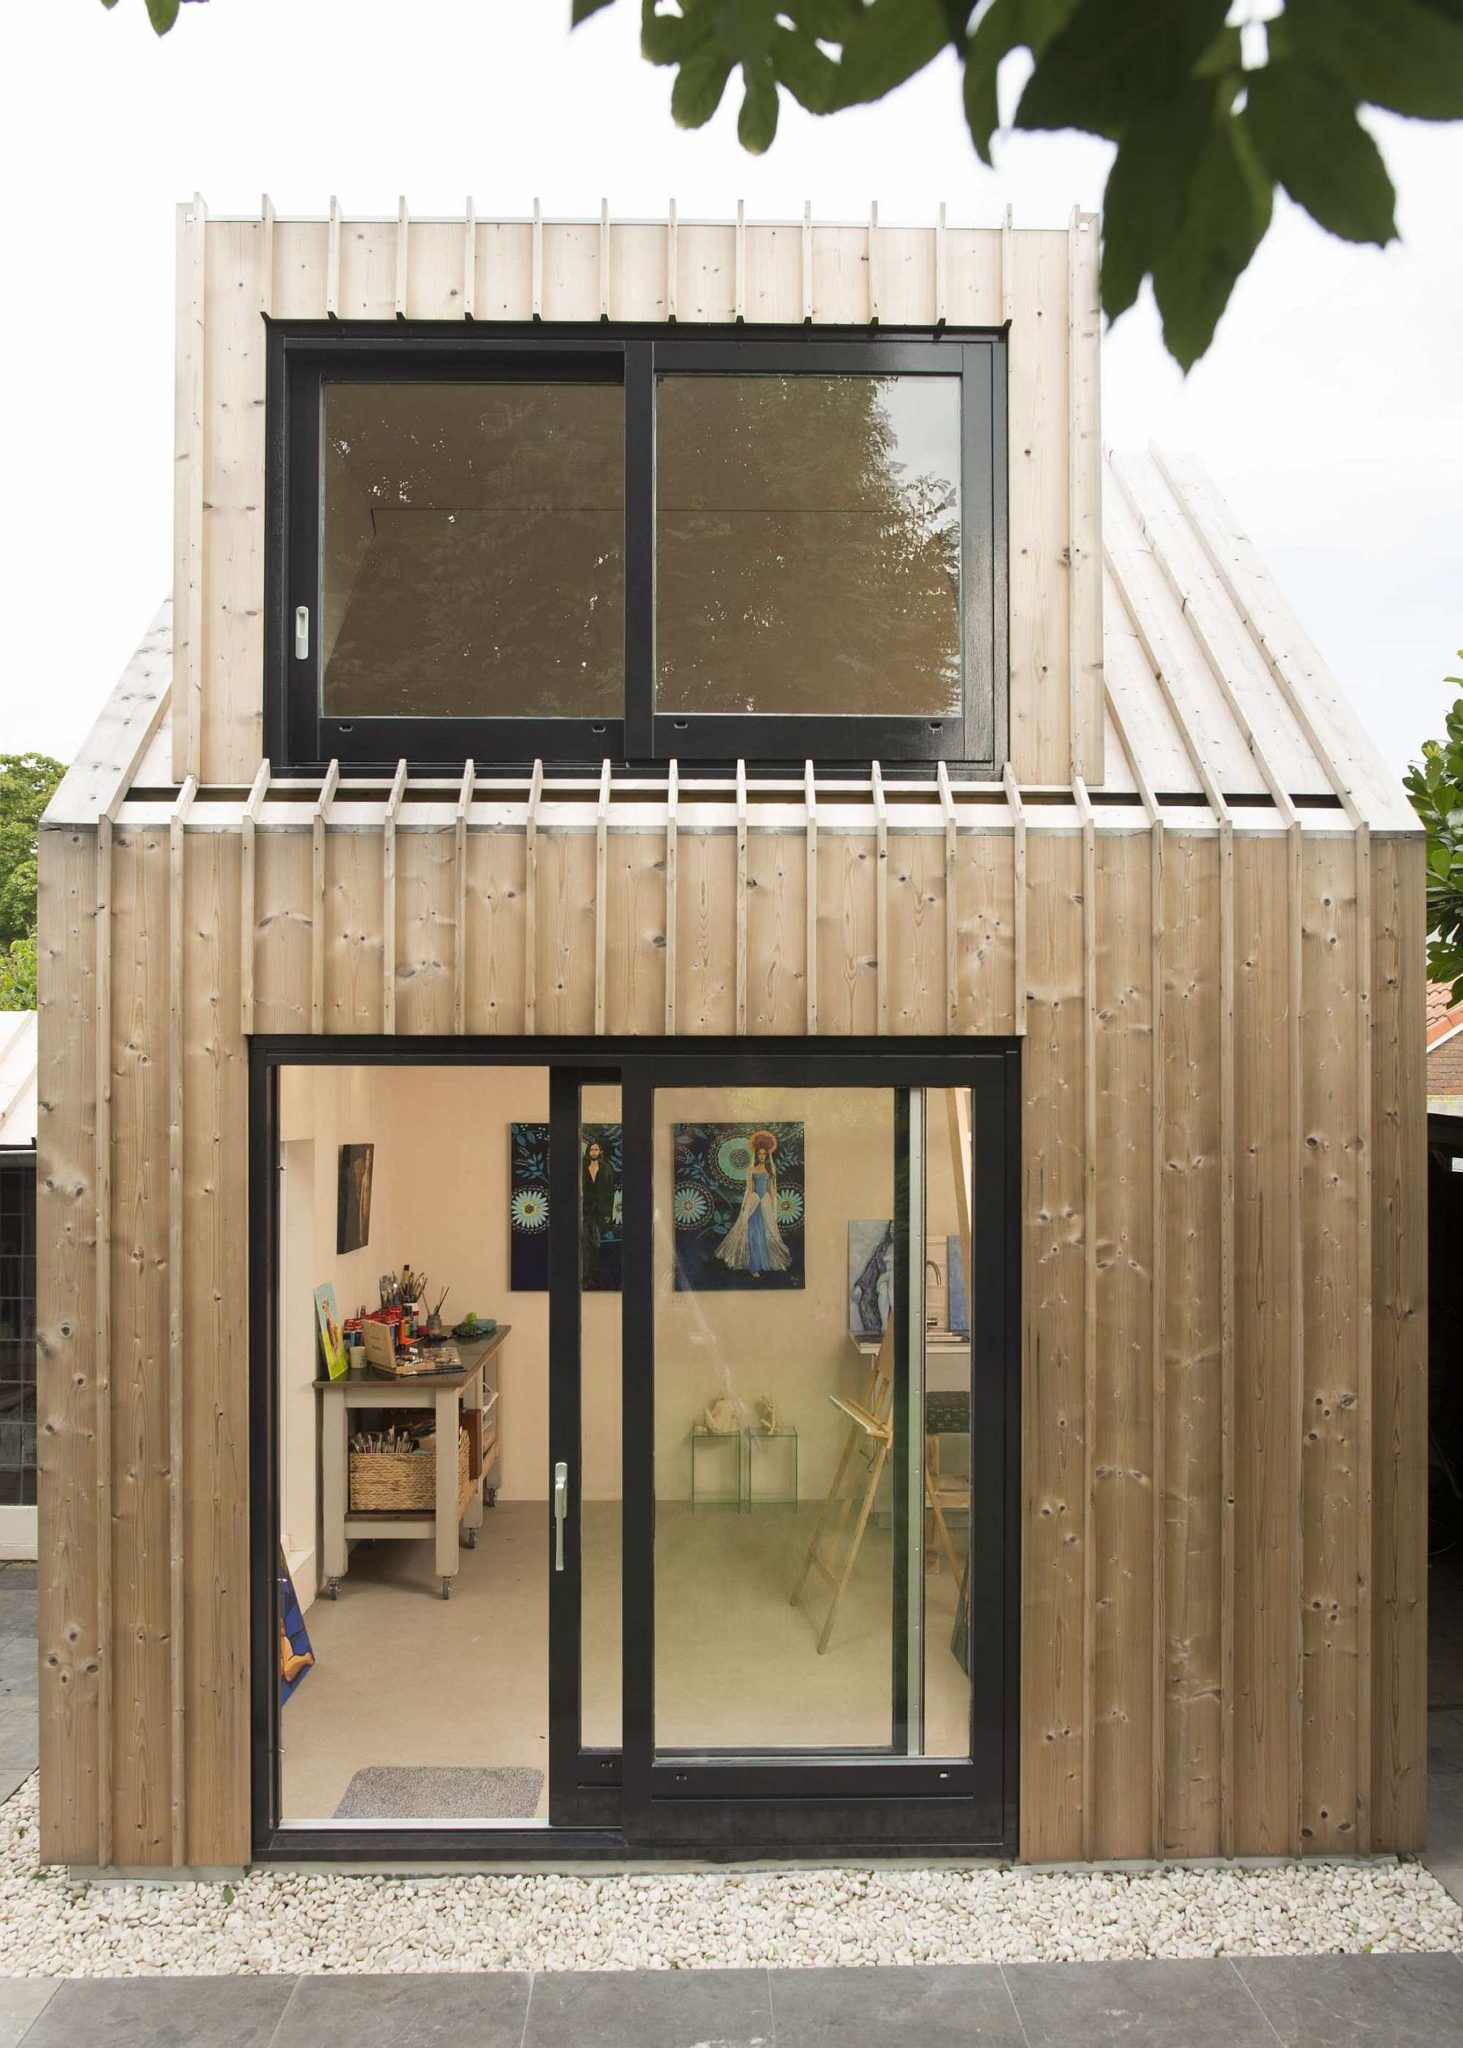 Black-framed doors and windows anchor the light, breezy structure